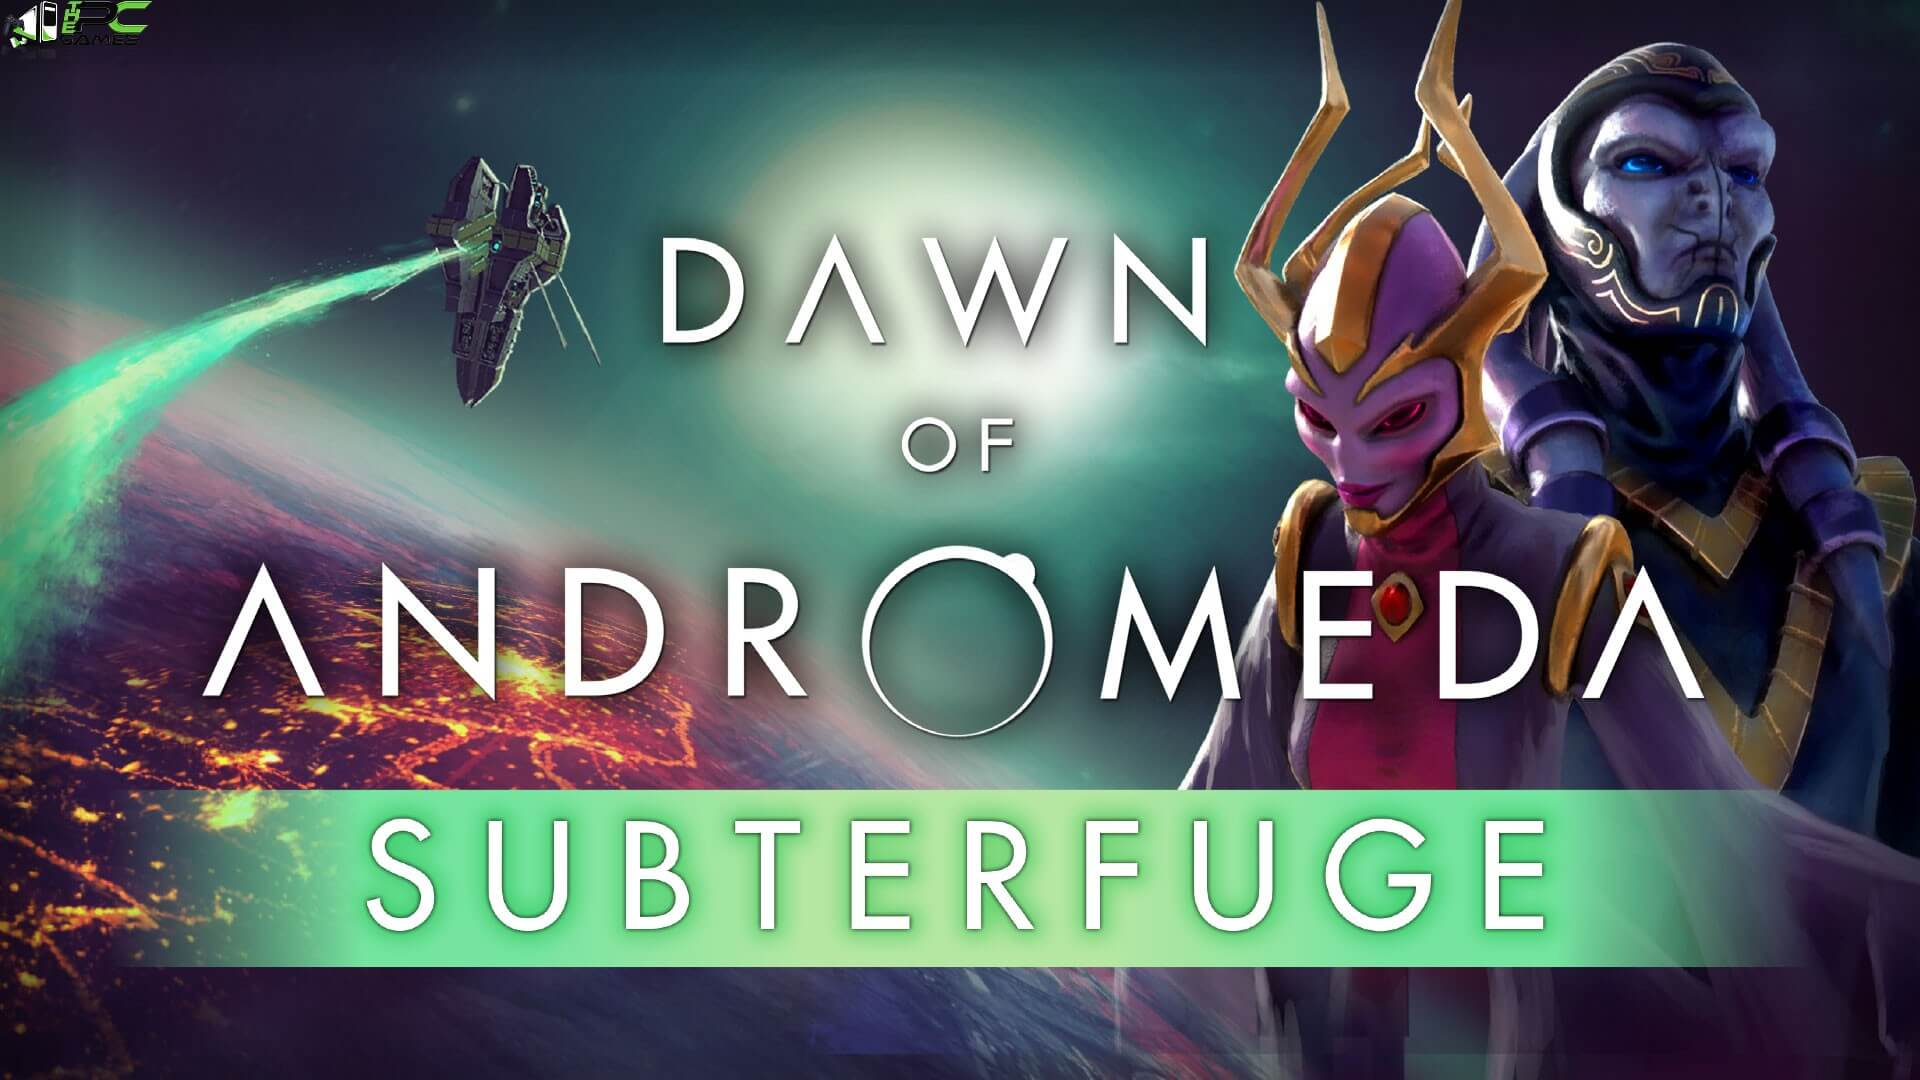 Dawn of Andromeda Subterfuge Free Download